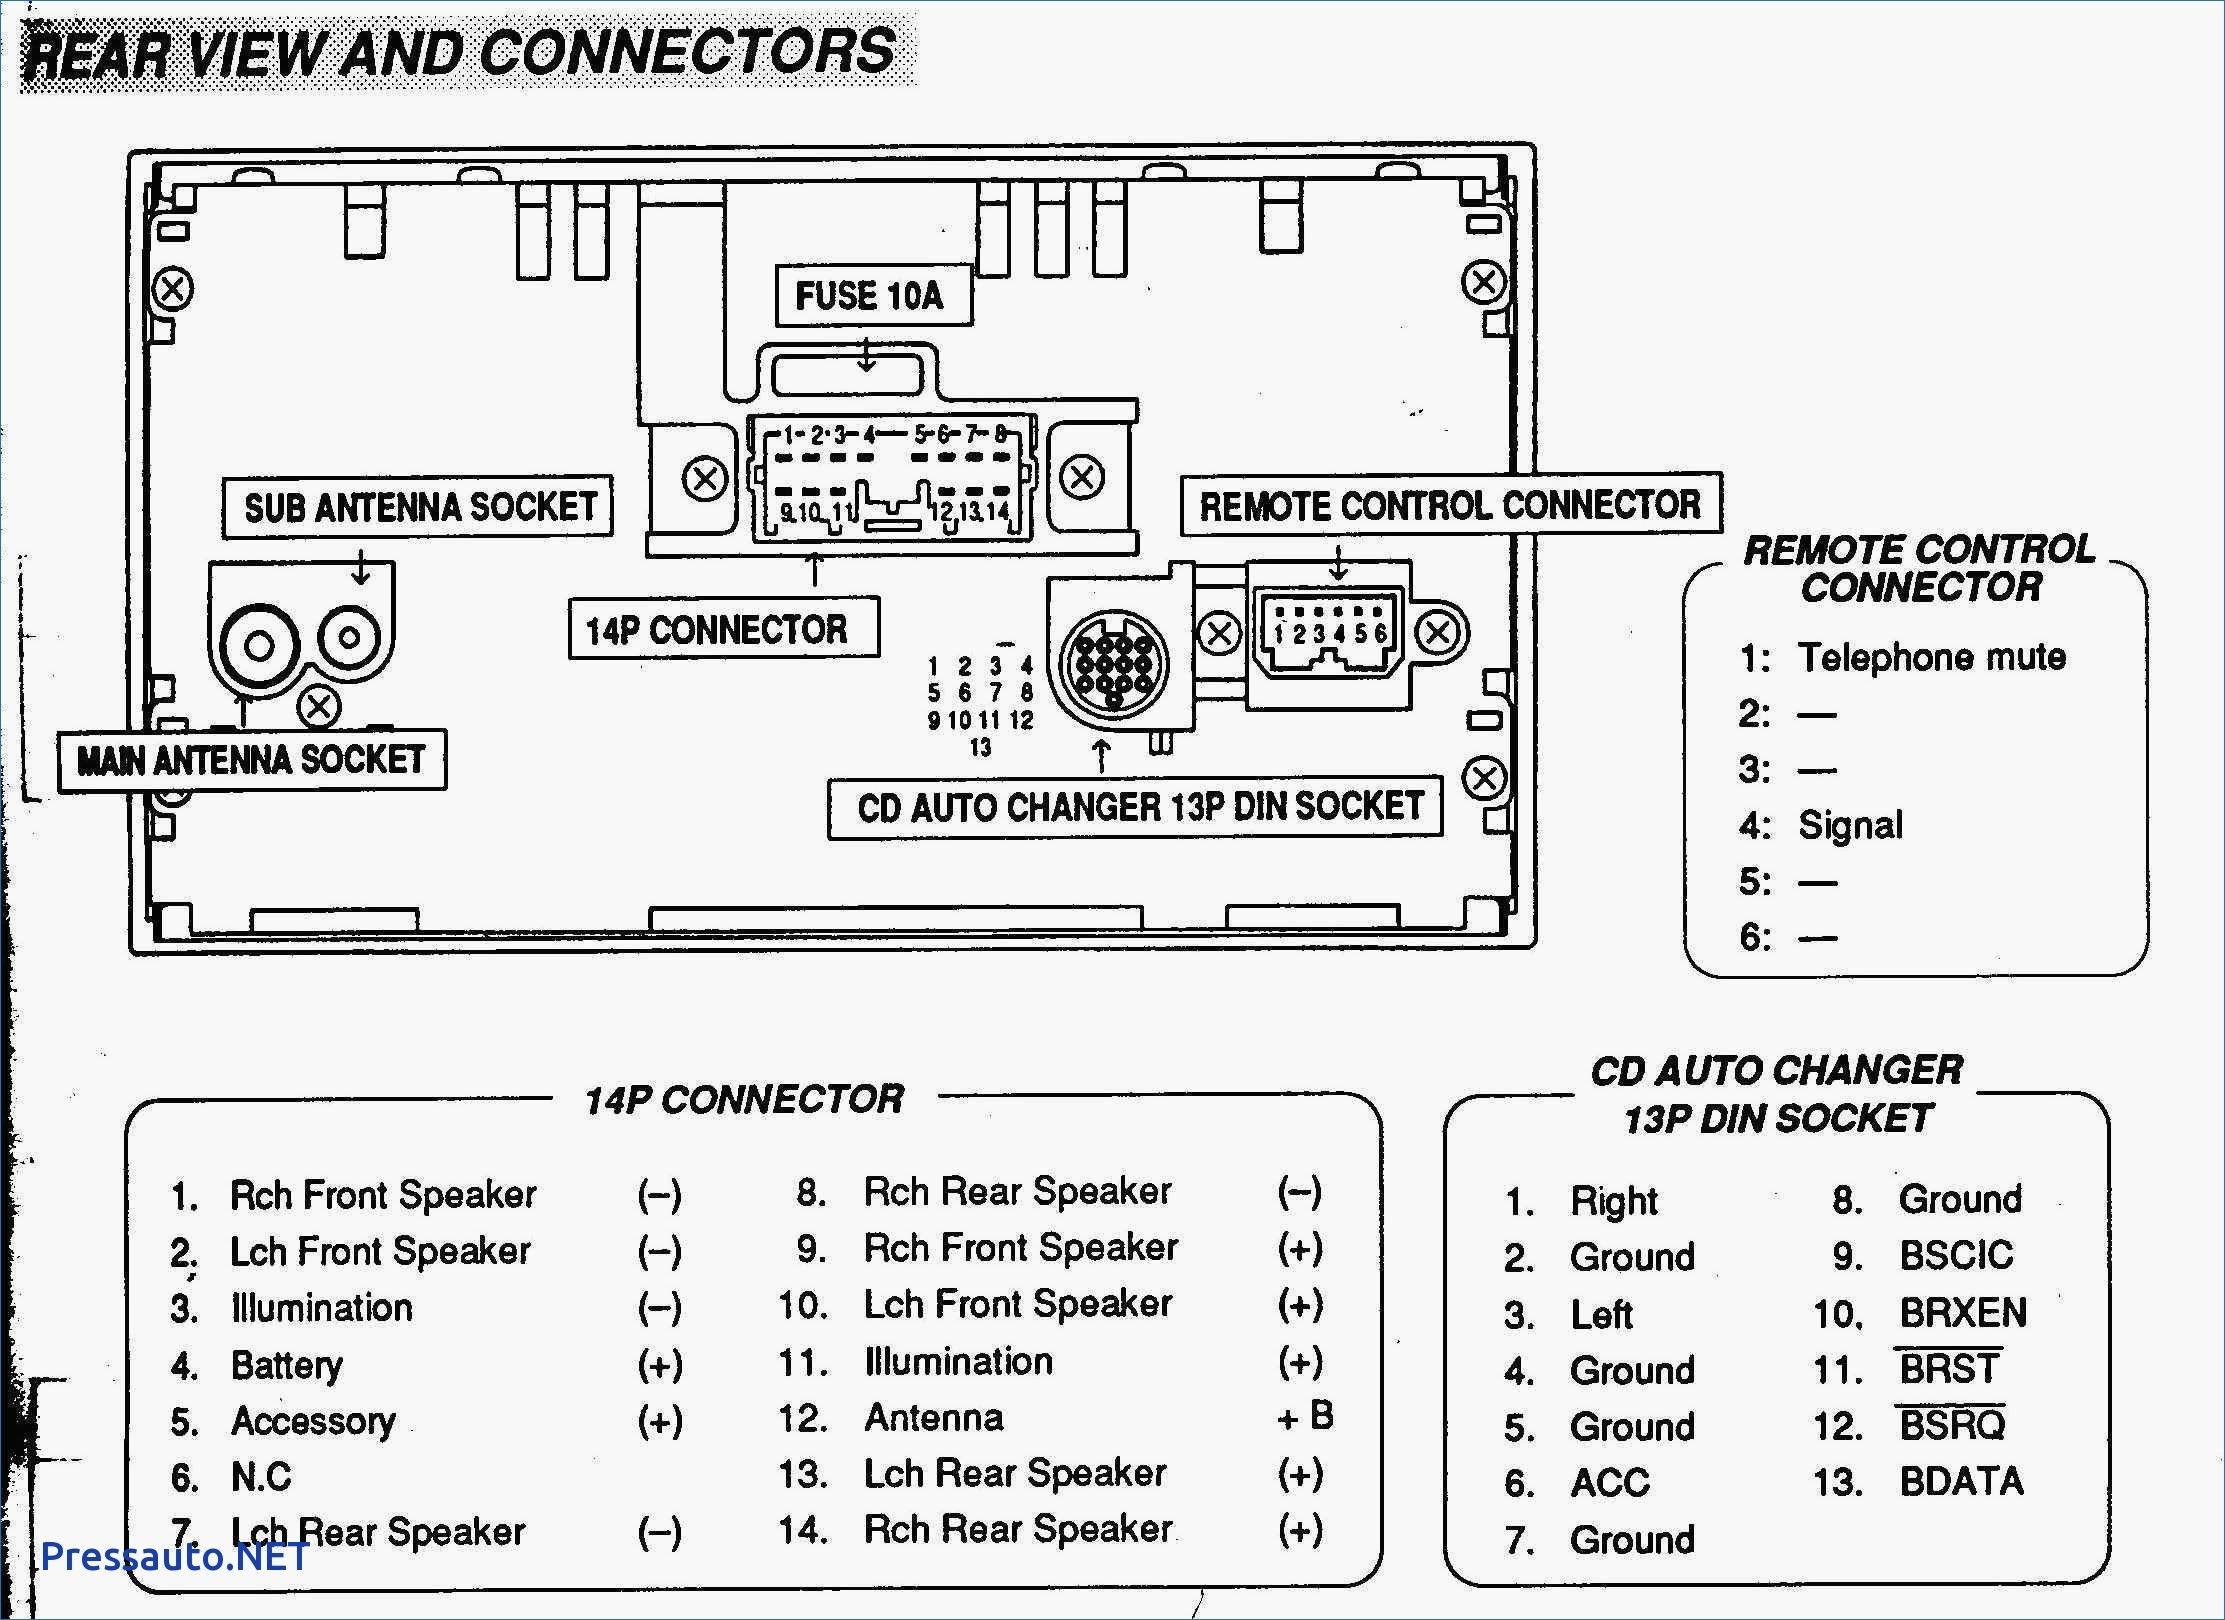 hyundai elantra radio wiring diagram 2005 radio wiring diagram vw golf wiring diagram data  radio wiring diagram vw golf wiring